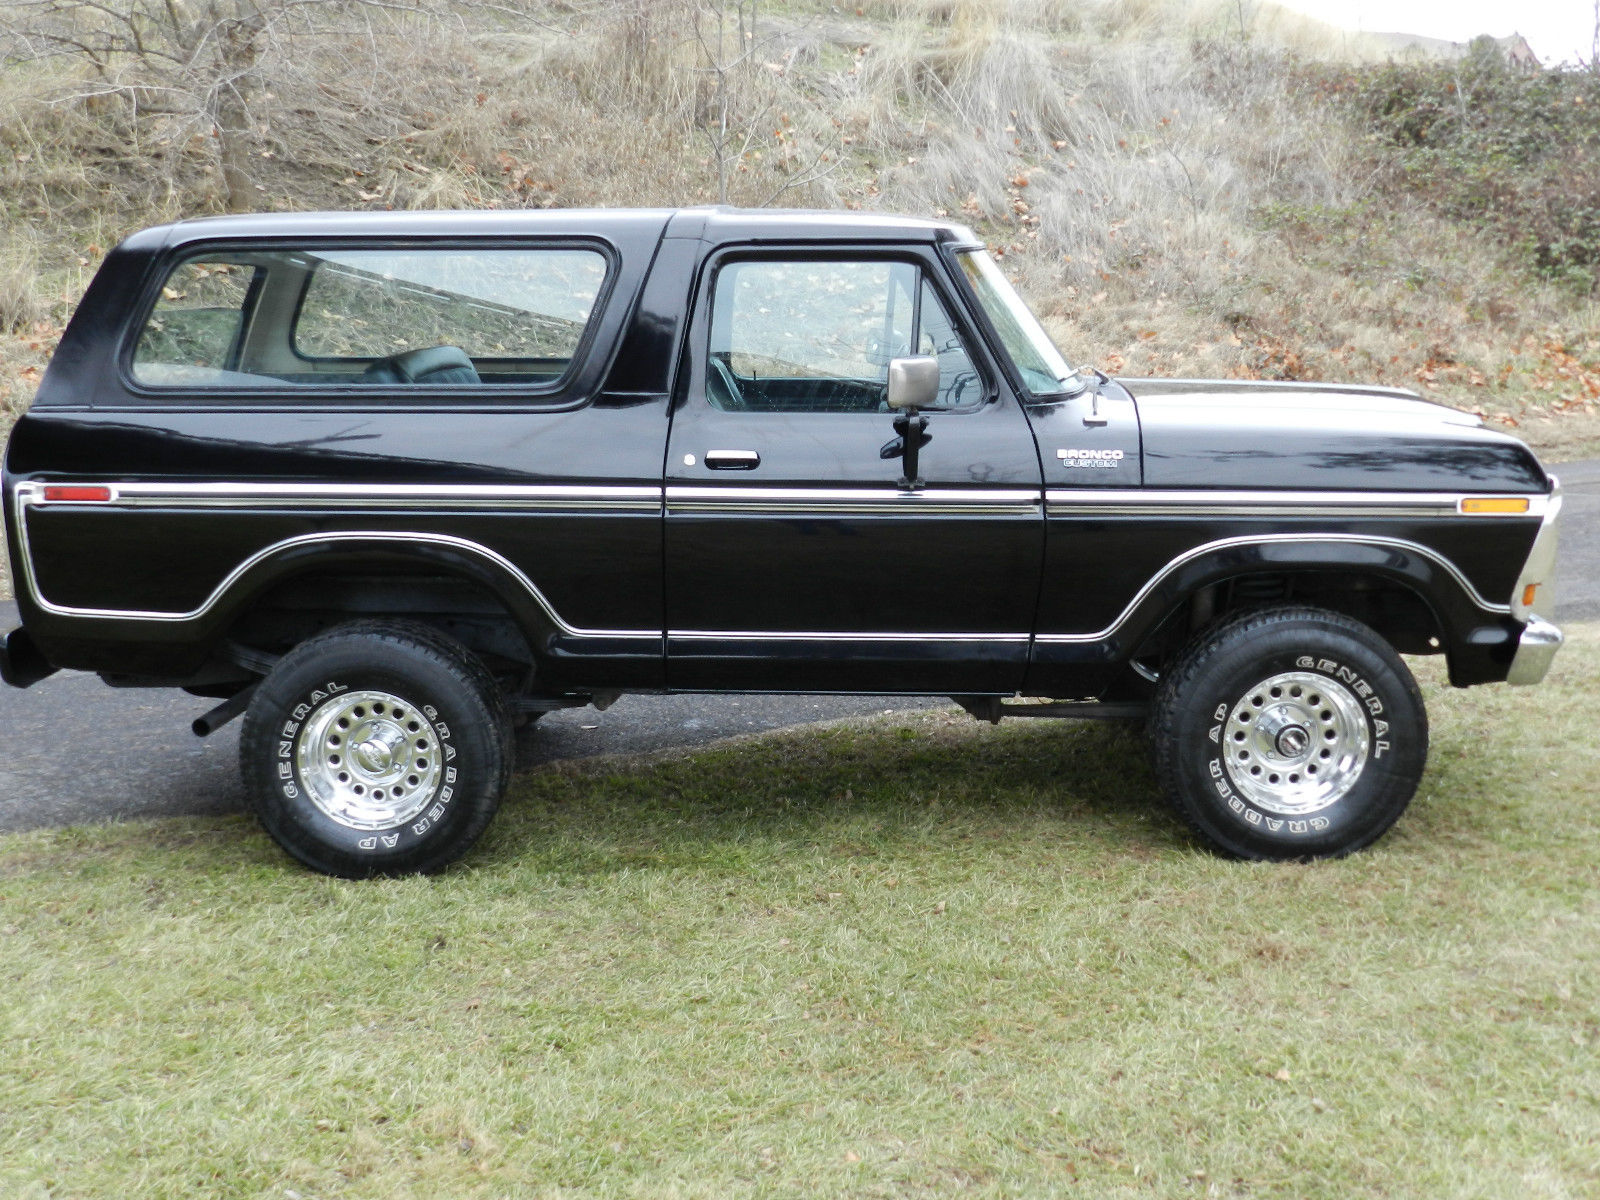 ford f150 bronco chevy trucks 4 door 1979 4x4 xlt black on classic solid